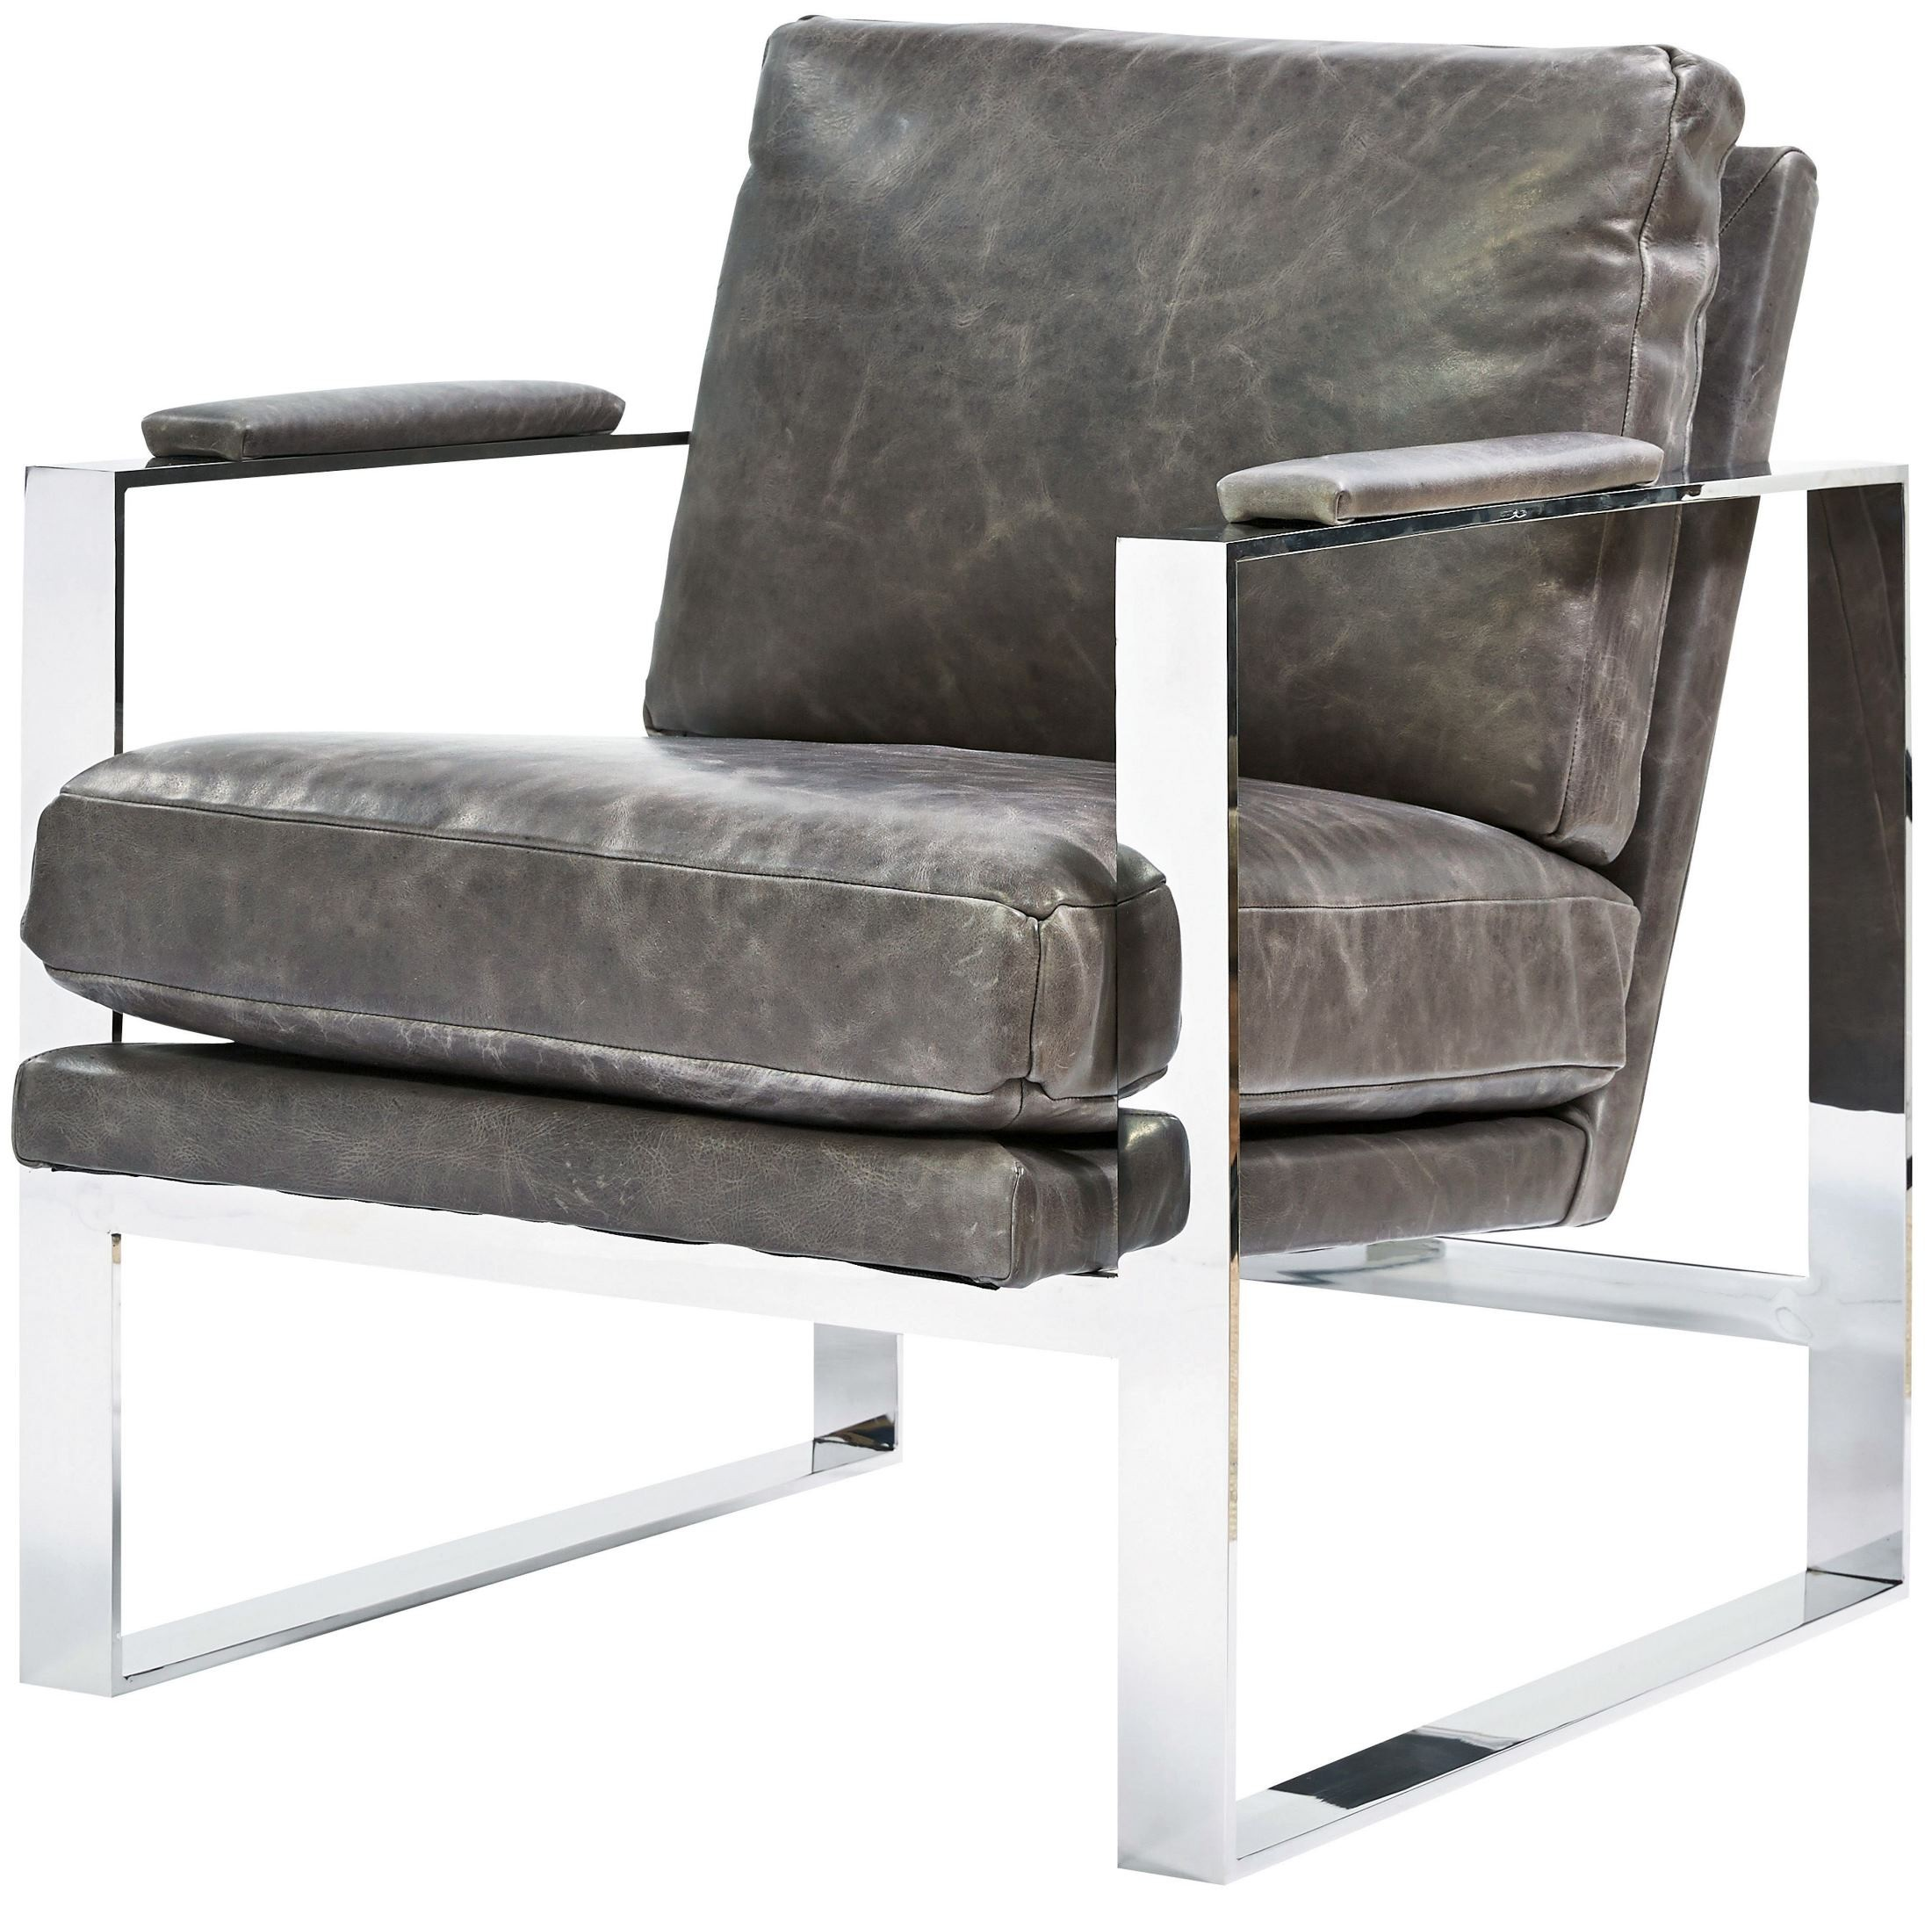 Corbin Brentwood Wolf Accent Chair From Universal